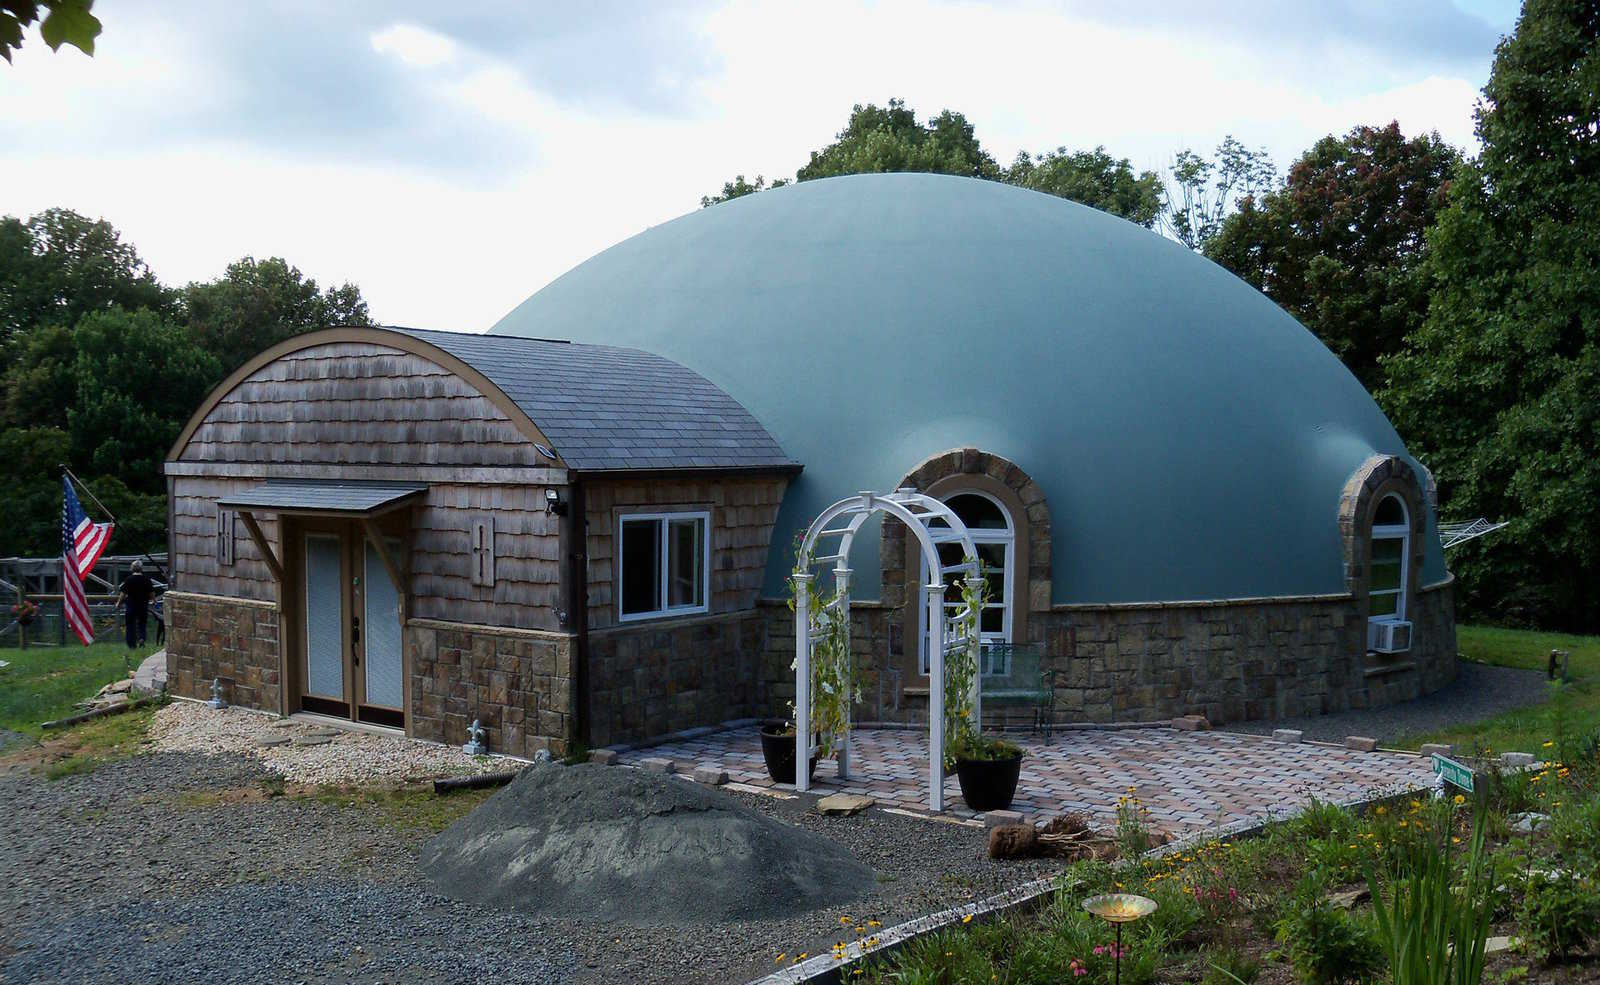 Serenity Dome in late 2015.